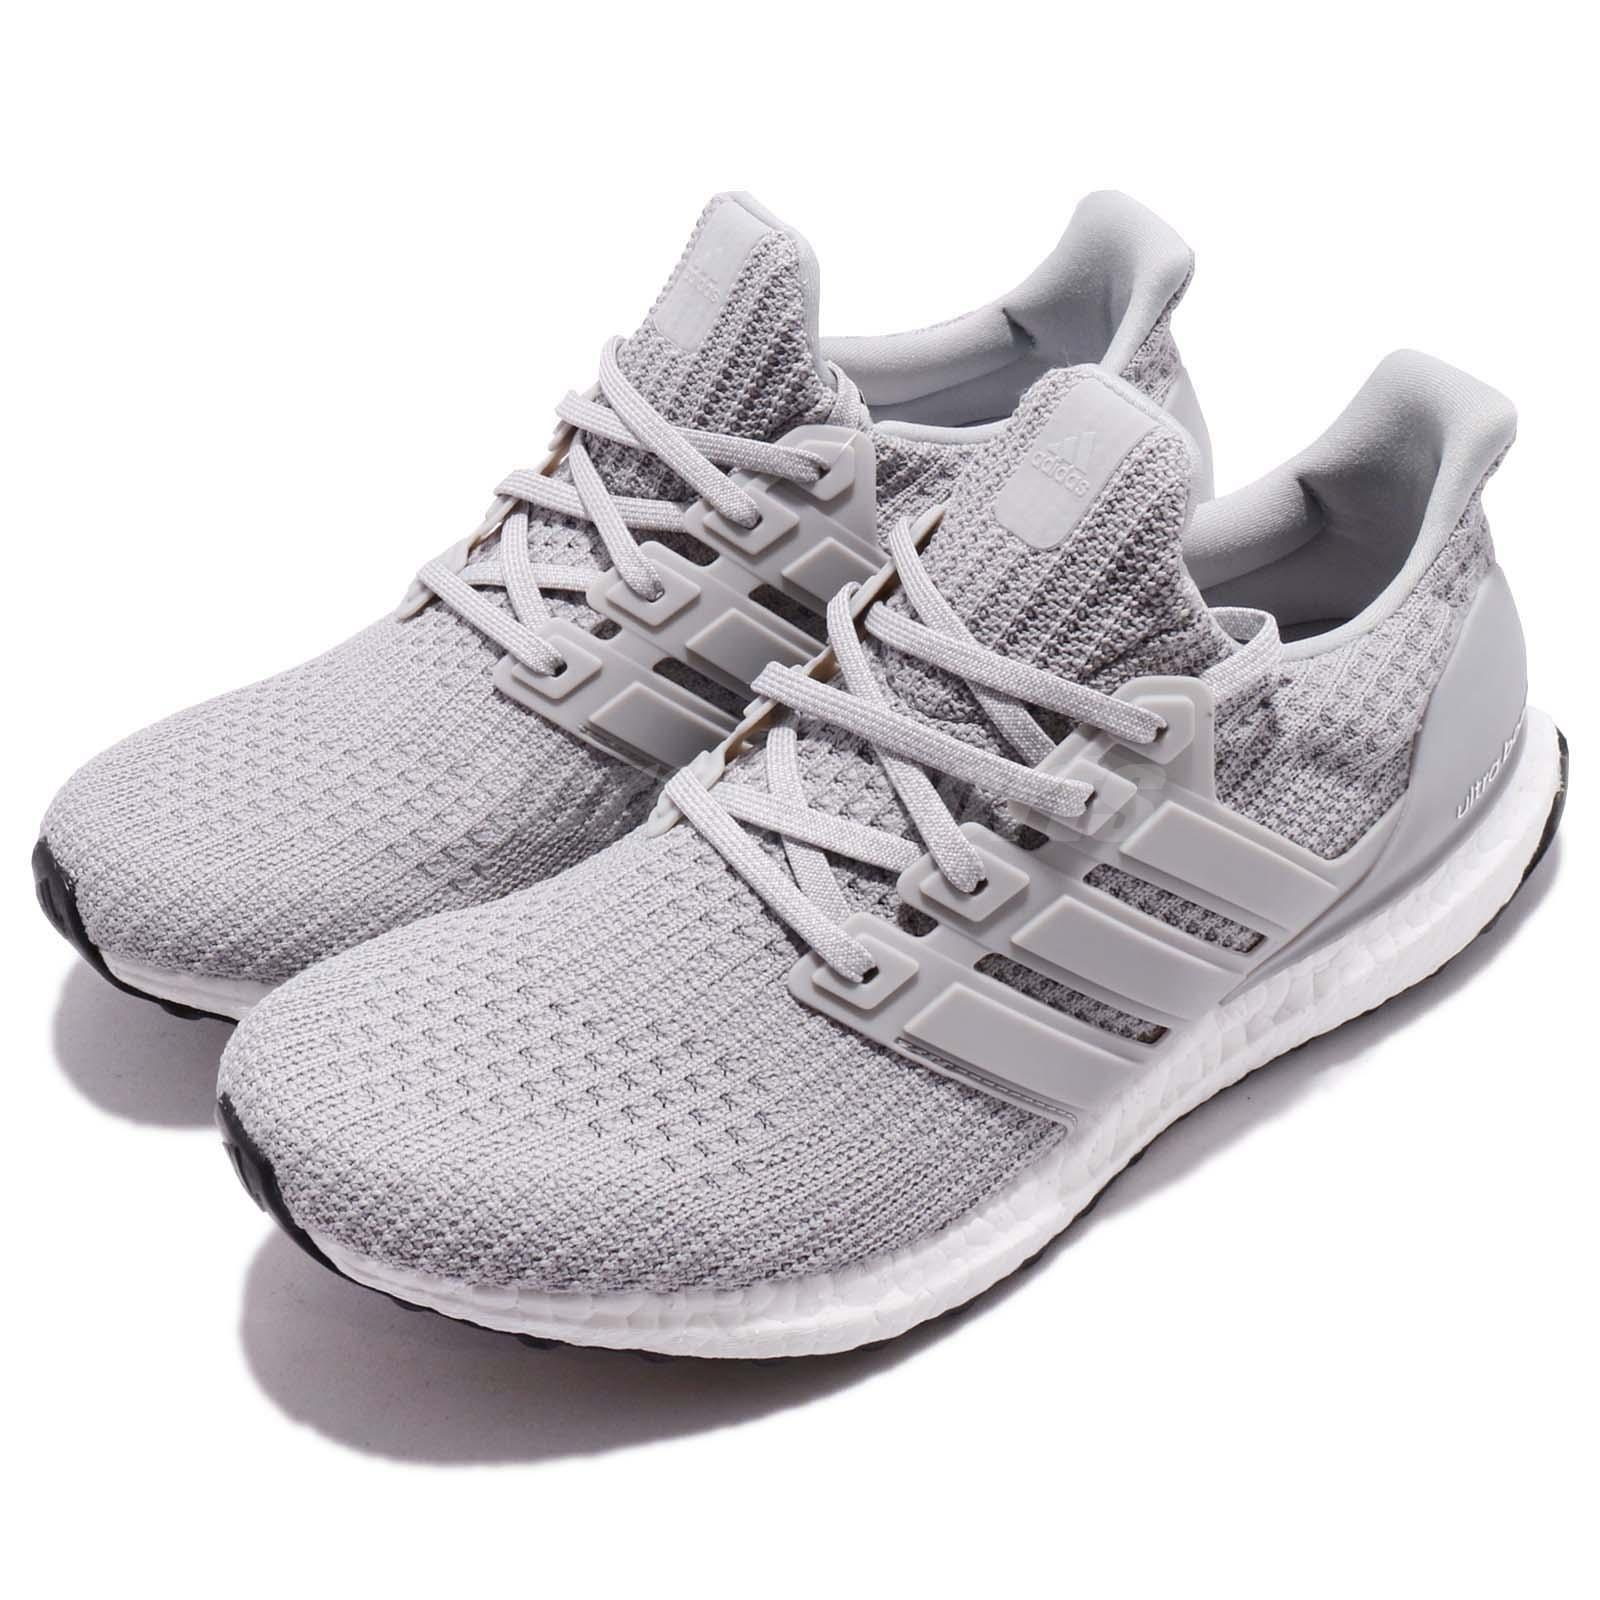 fc67a11078c38 Details about adidas UltraBOOST 4.0 Continental Grey White Men Running Shoes  Sneaker BB6167